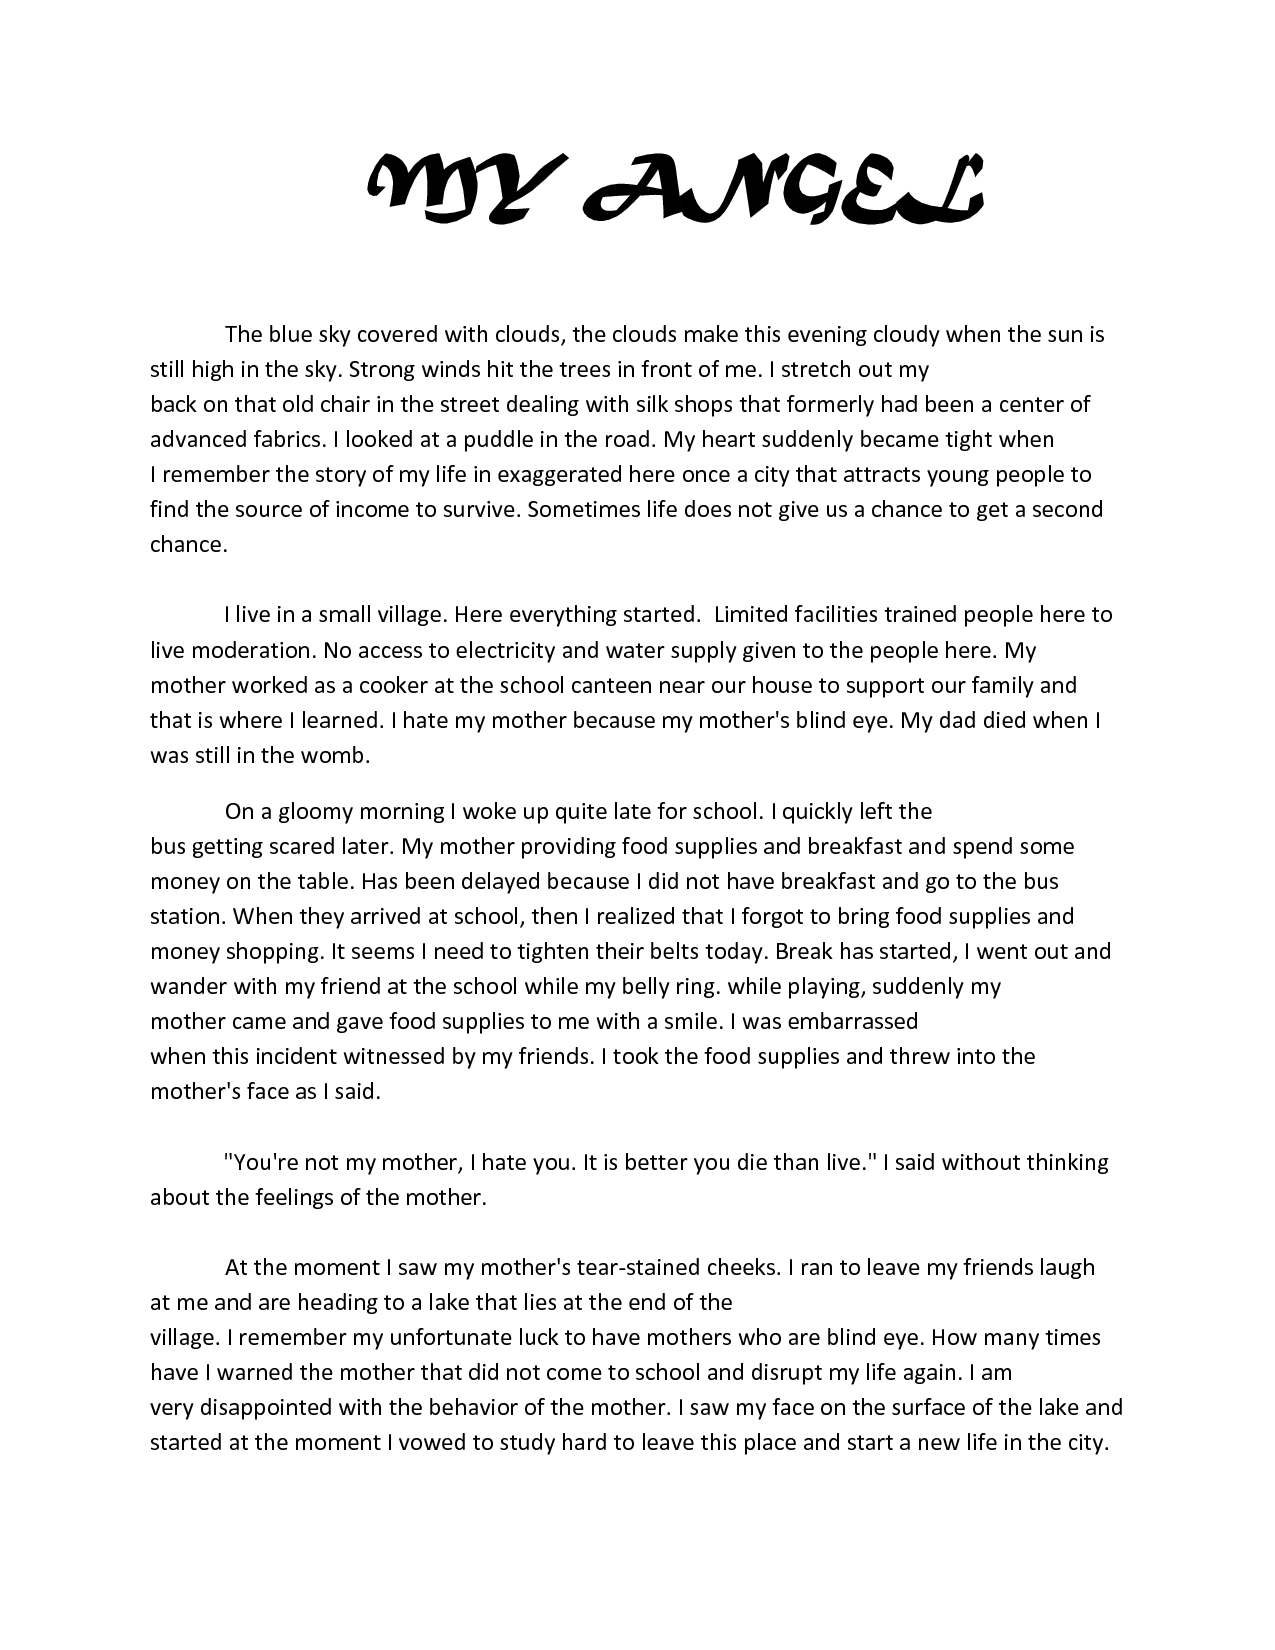 spm english essay short story Read forgotten essay from the story sad short stories that will spm english essay continuous writing story beginning with my spm about love watching horror movie and plans history ancient greece.